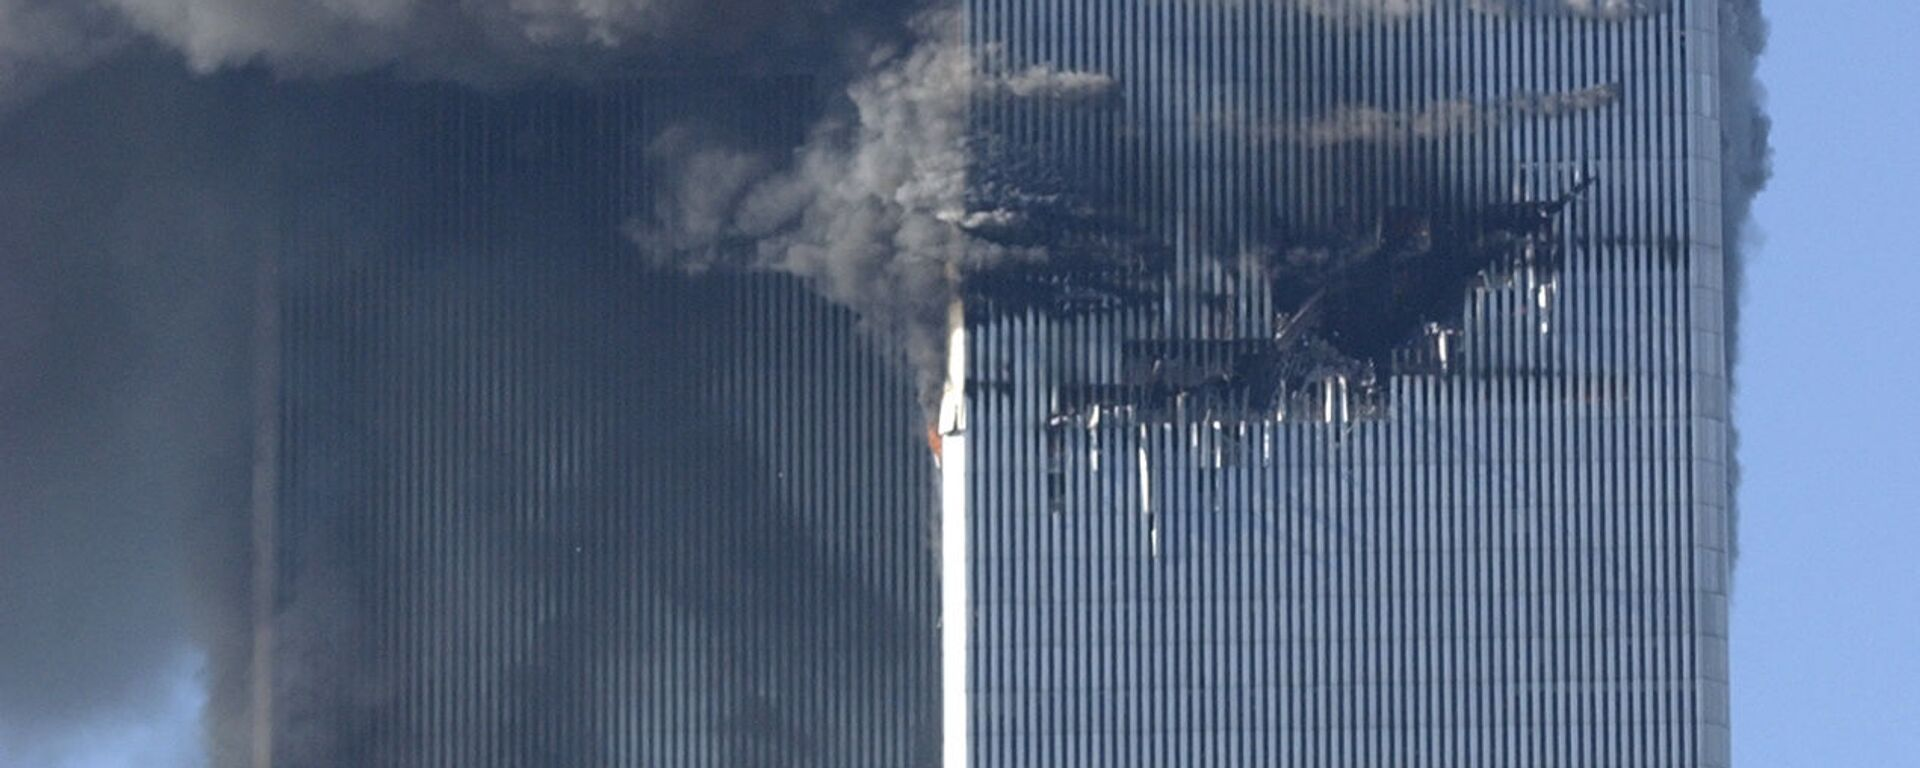 Smoke billows from the North and South Towers of the World Trade Center before they collapsed on September 11, 2001 in New York, NY - Sputnik International, 1920, 17.07.2021